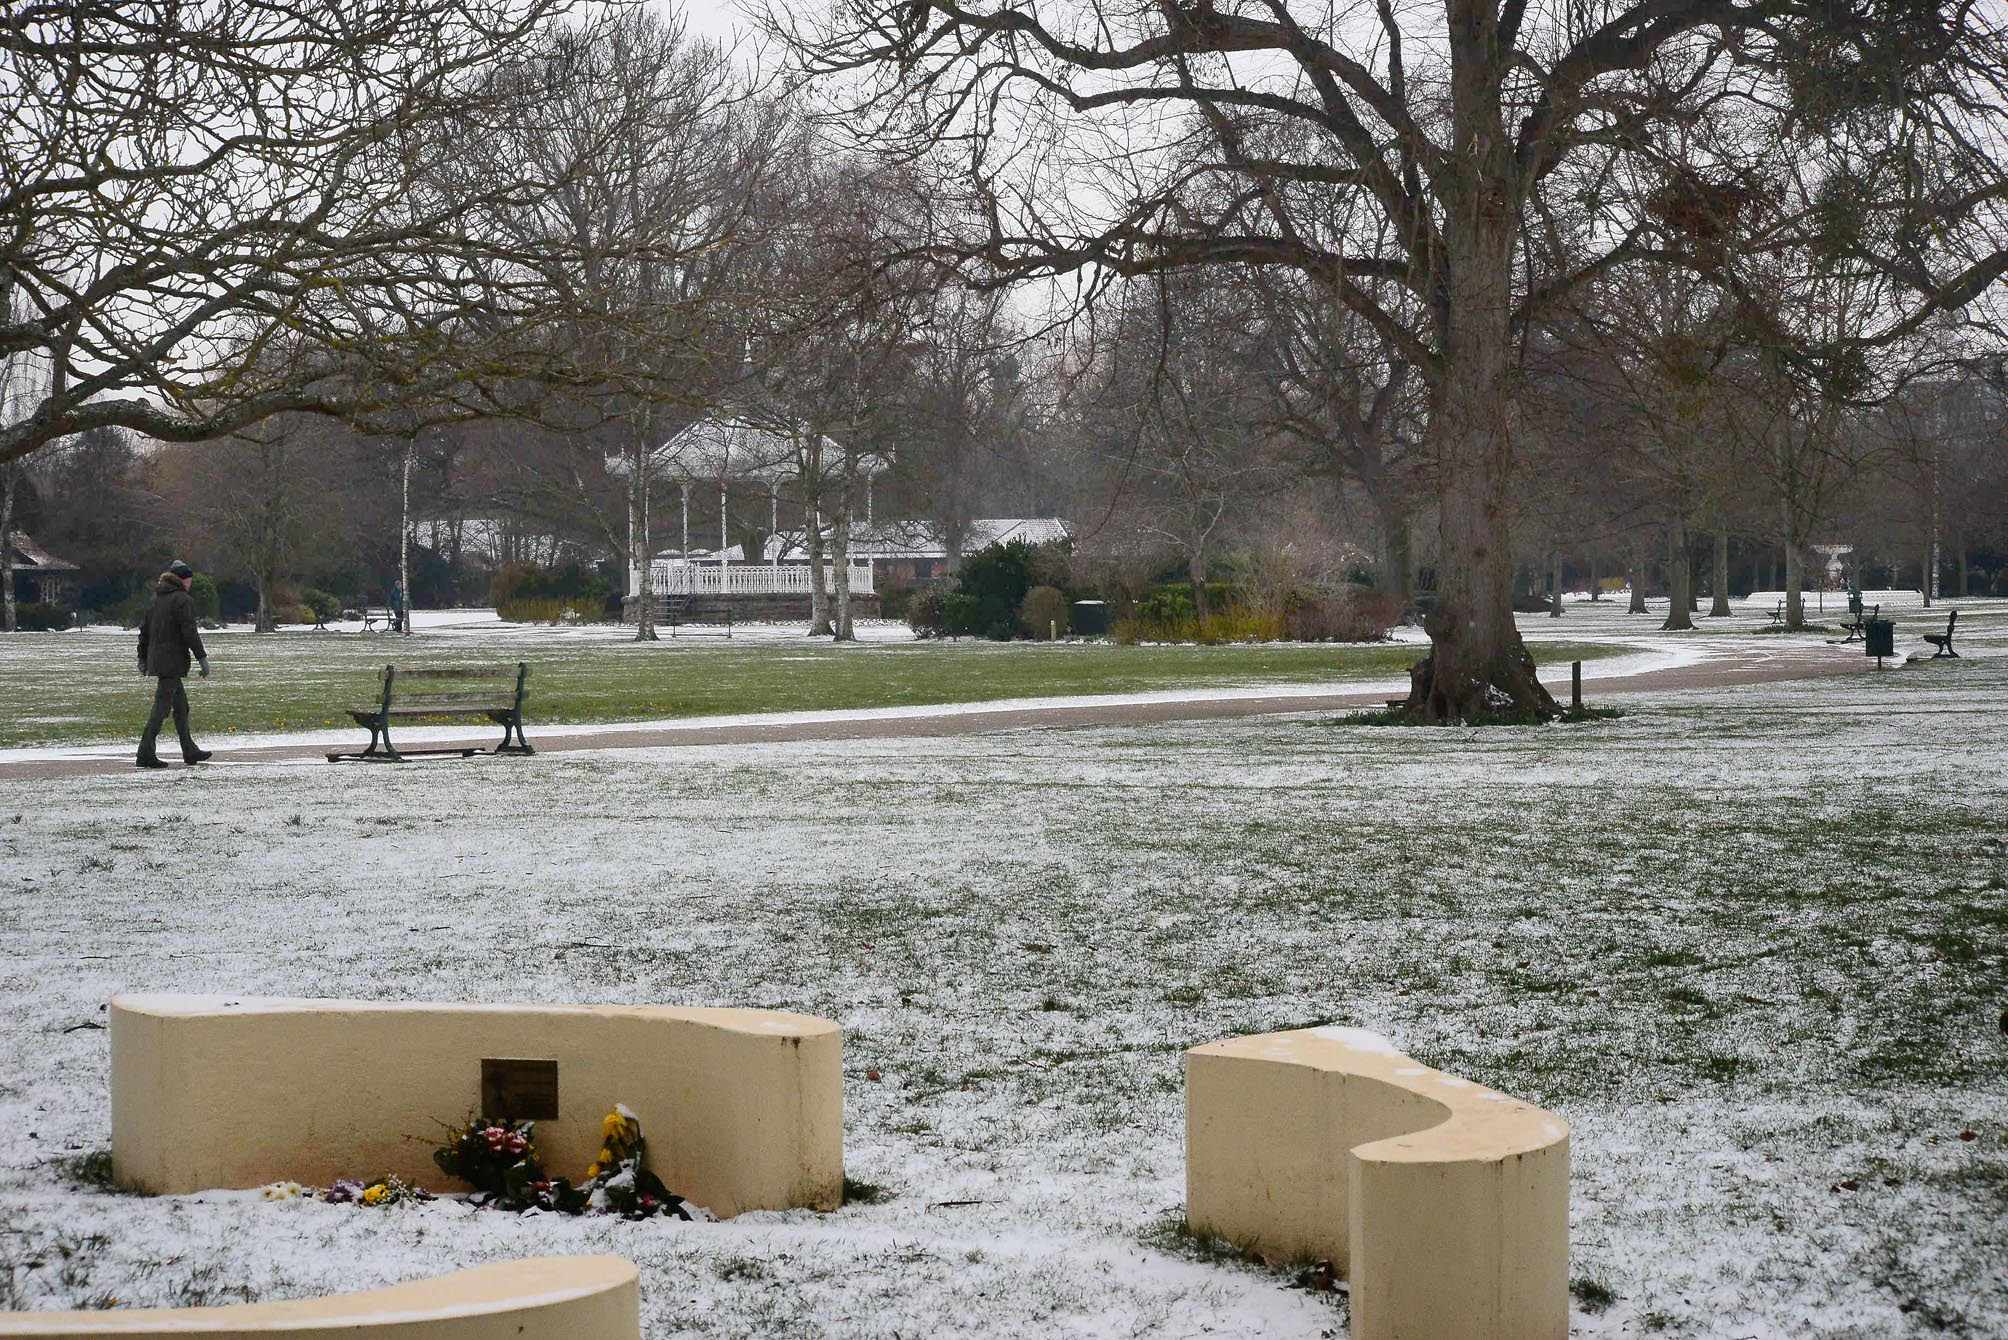 SPRINKLING: Taunton's Vivary Park during the snow in March 2018